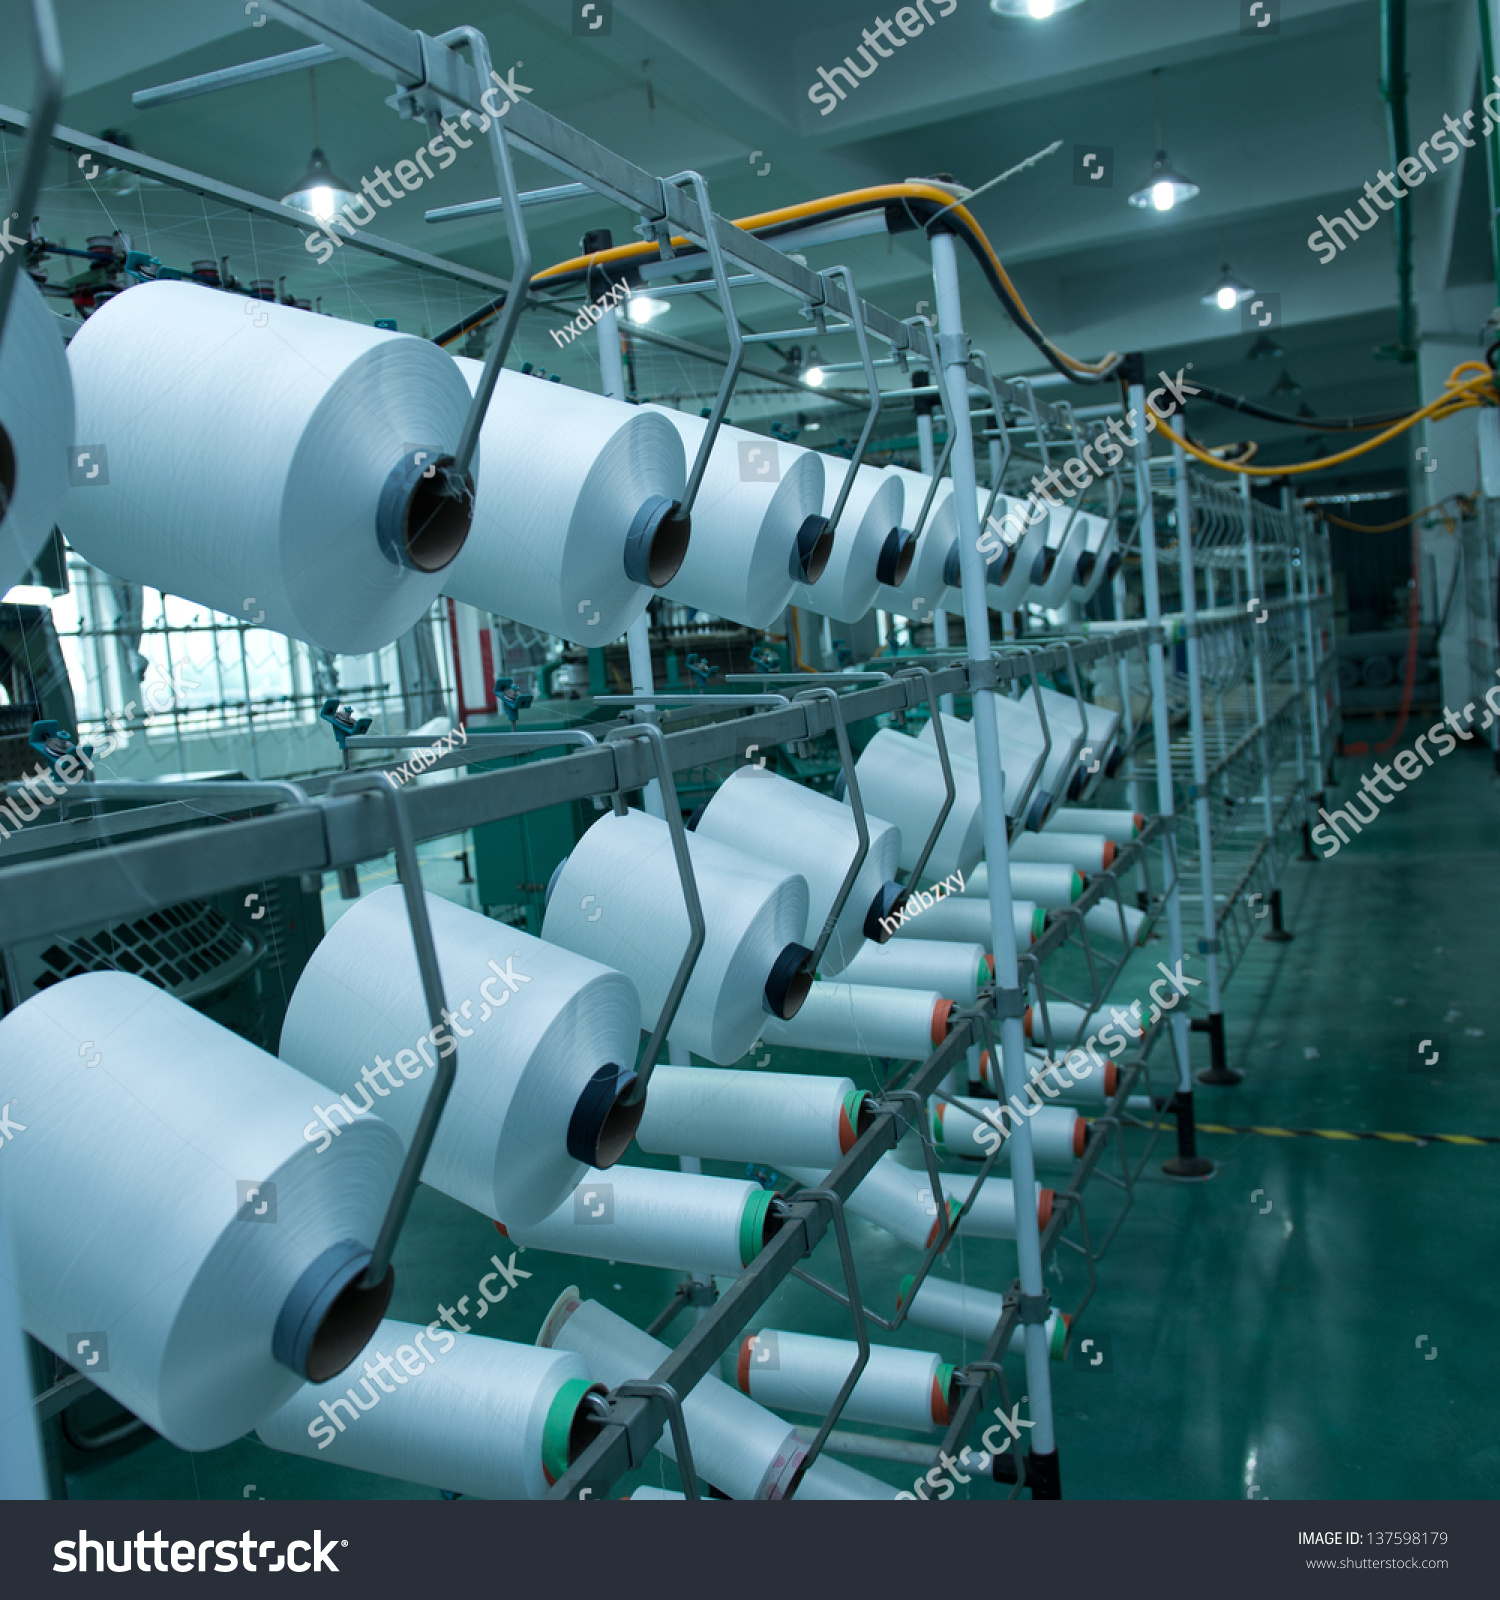 ethics of the textile industry This code of ethics recognises the need to adopt a consistent approach across all the camozzi group companies and is intended to communicate the values and guidelines that should influence all day to day activities.